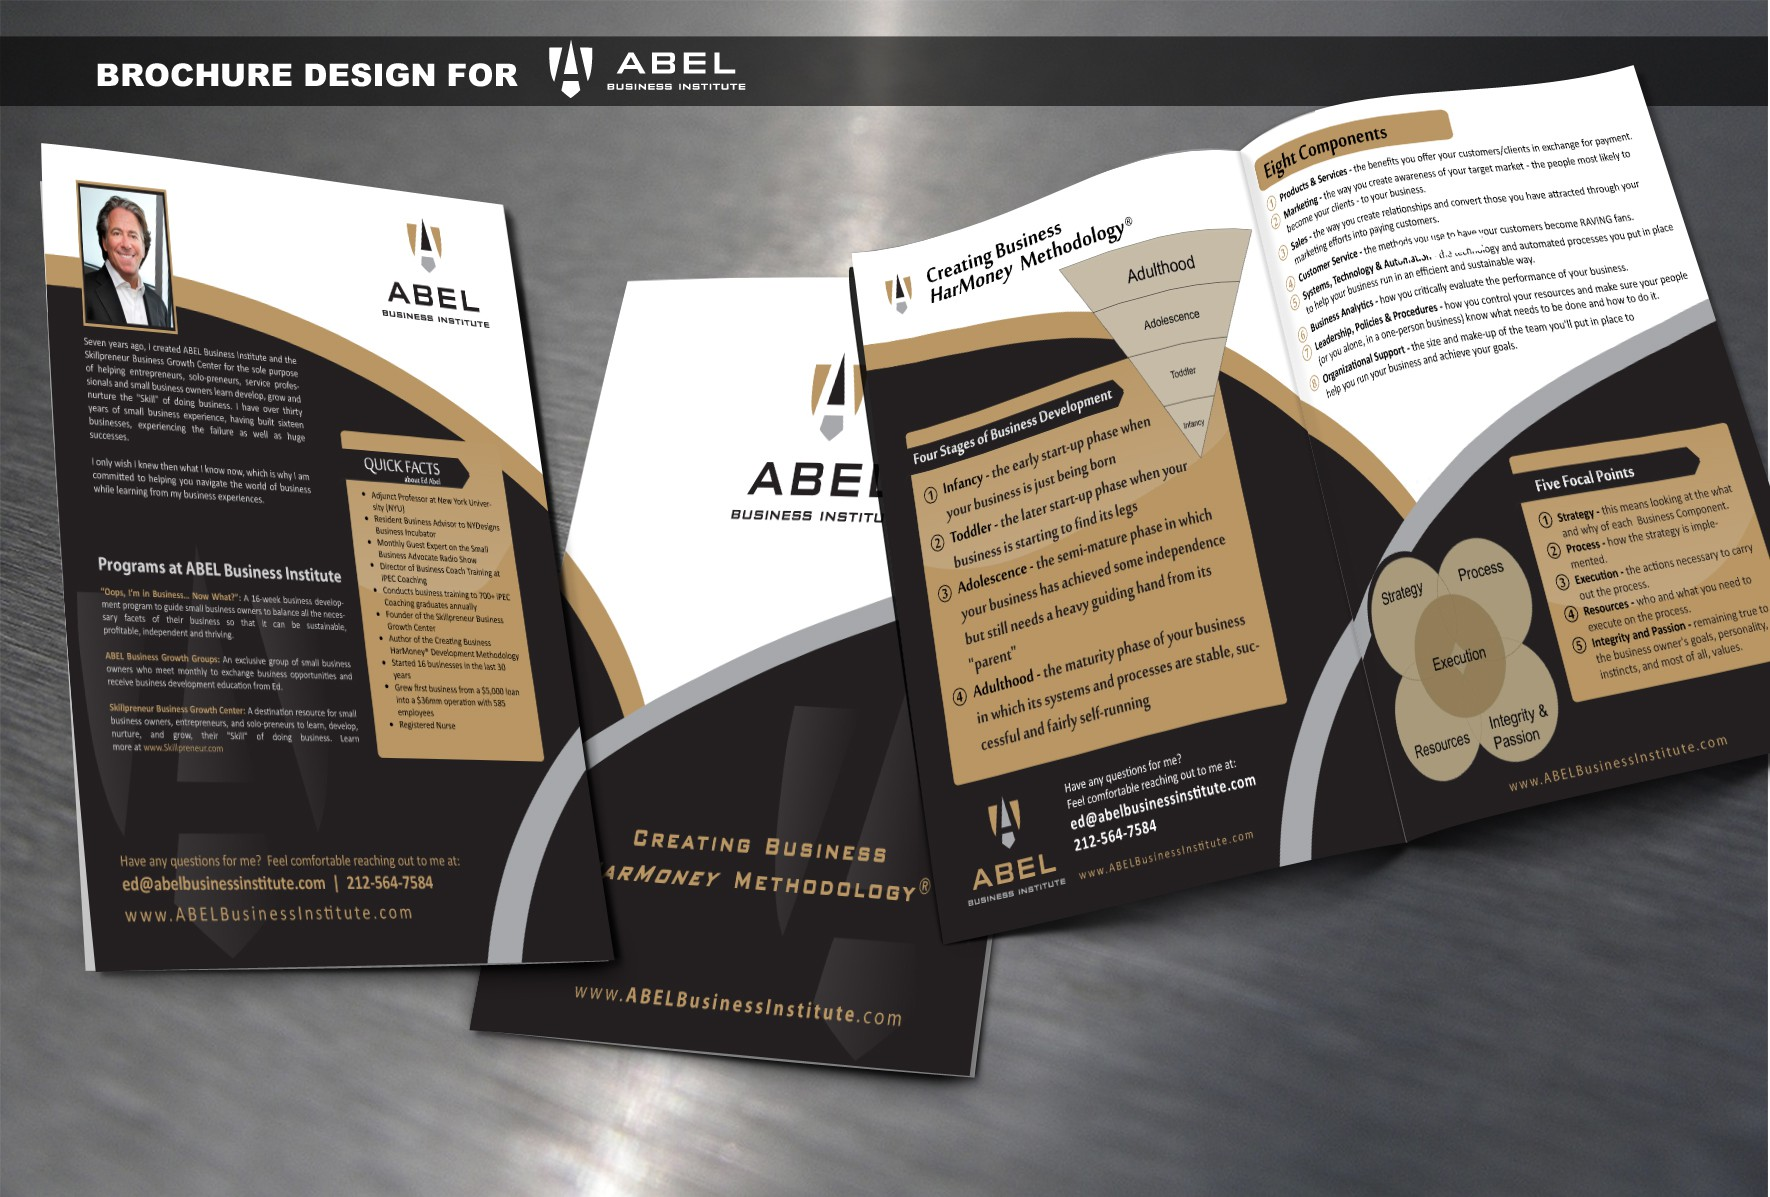 New brochure design wanted for ABEL Business Institute